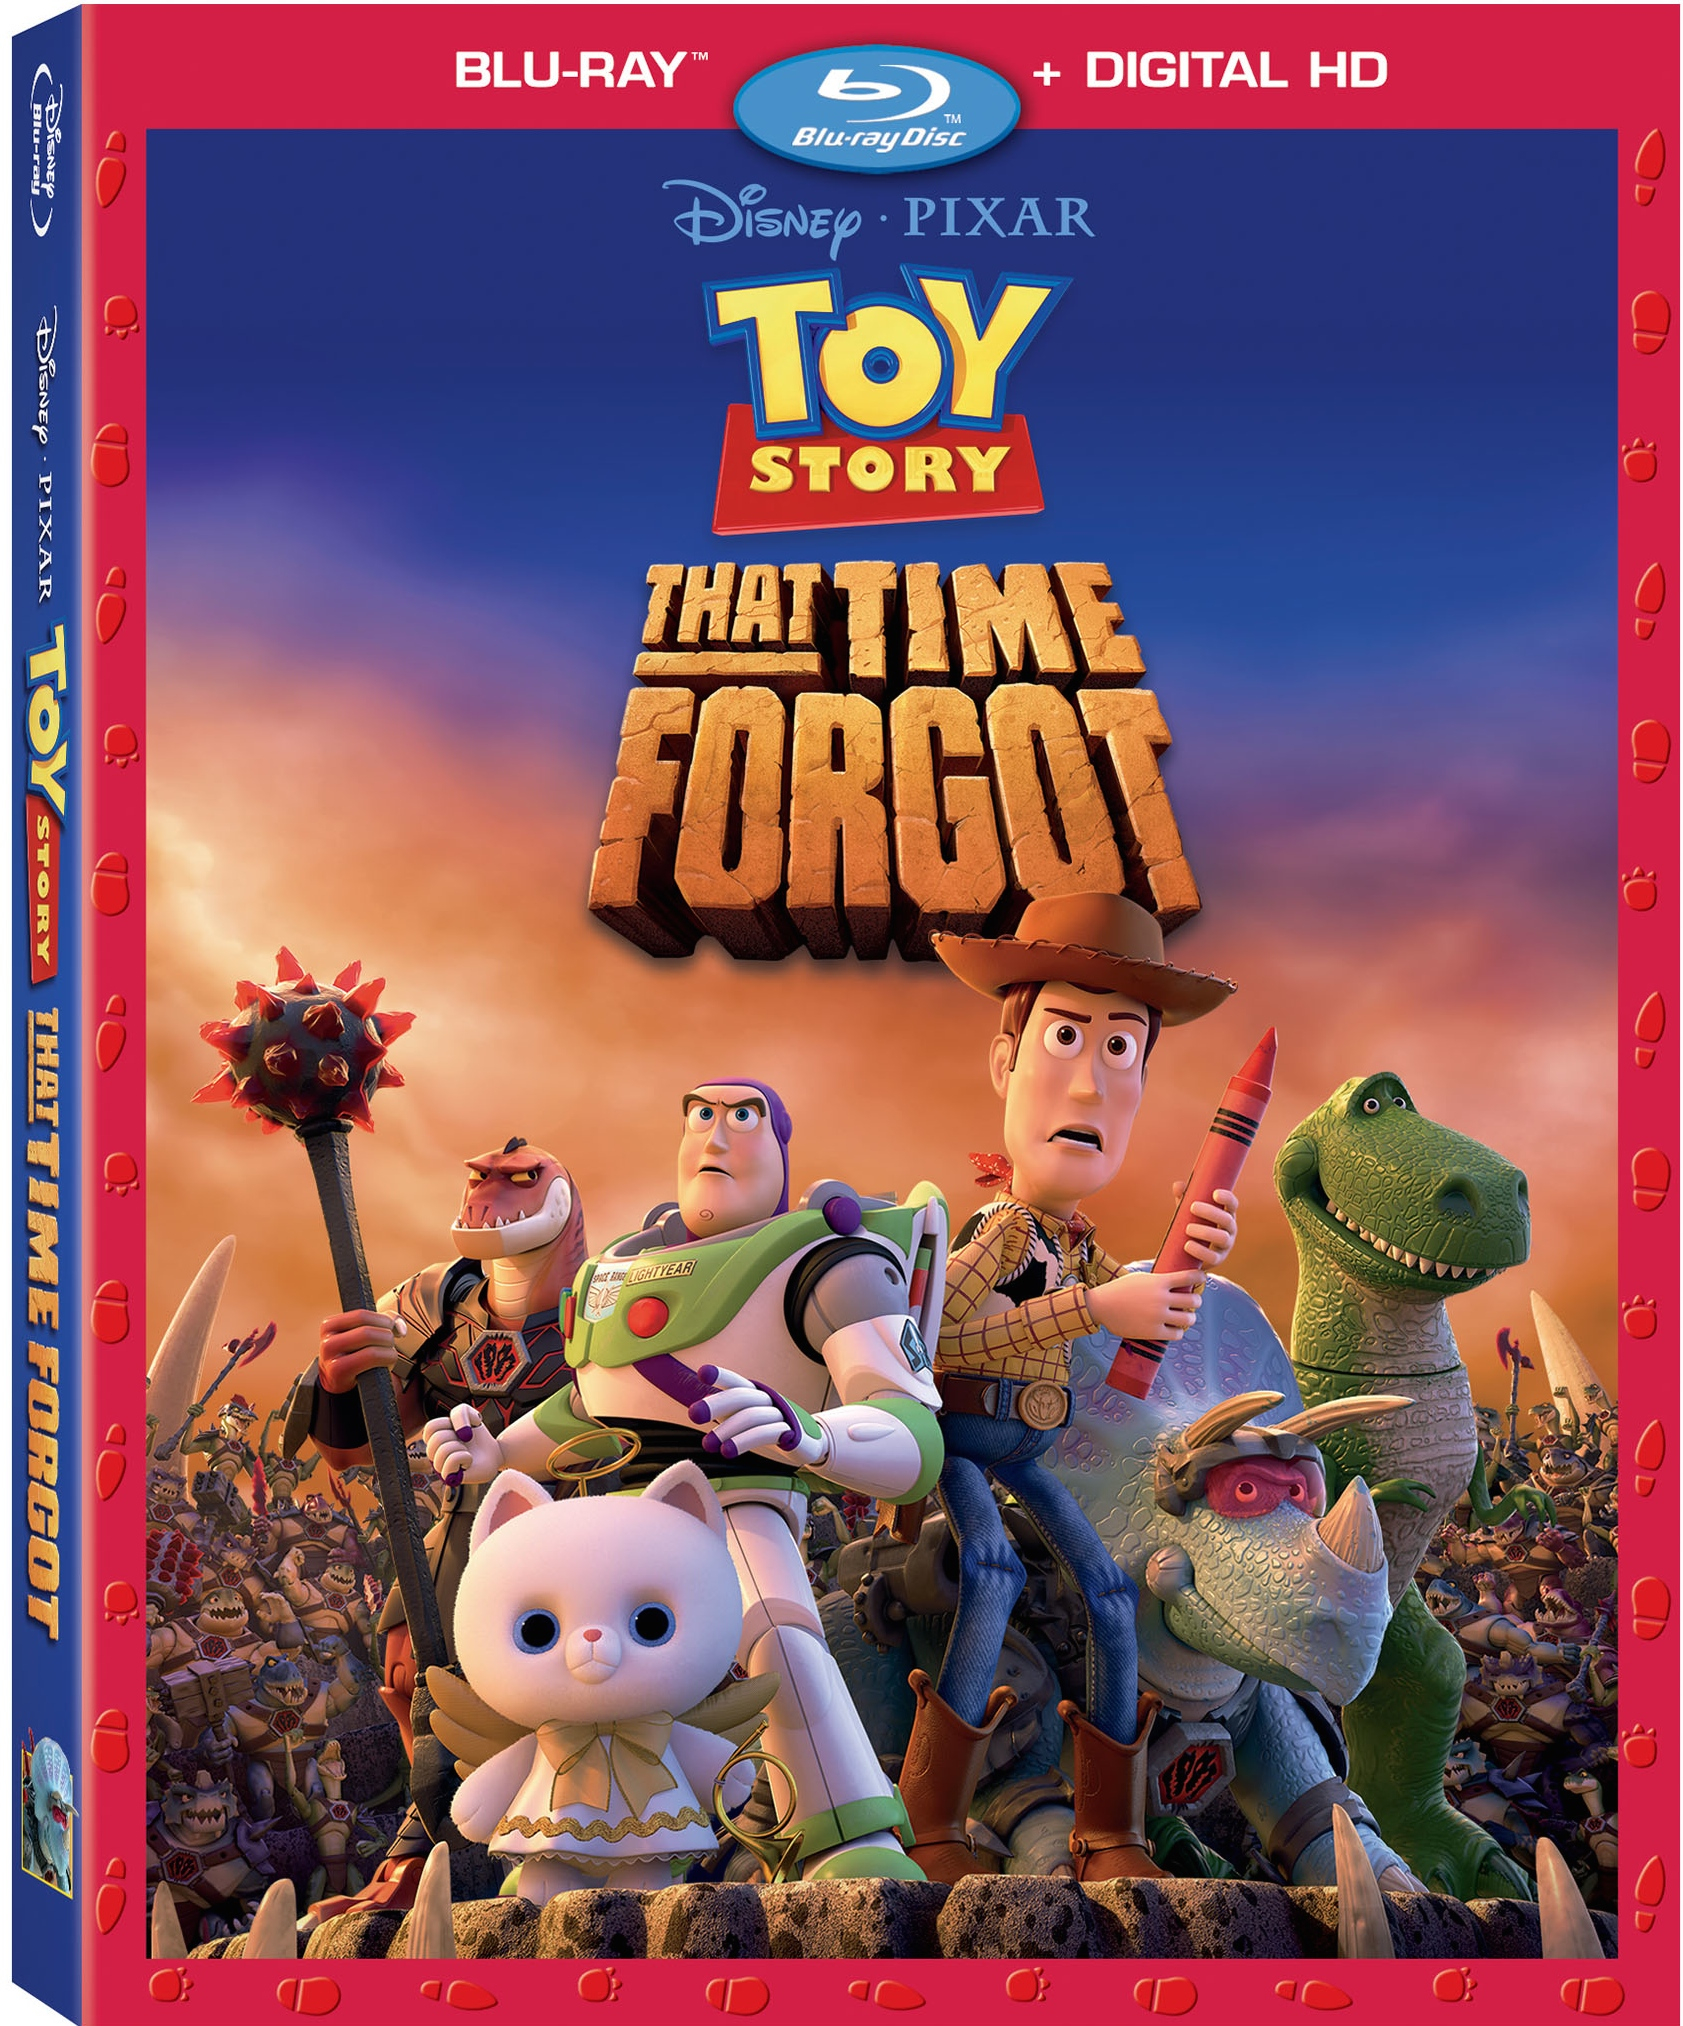 Pixar's 'Toy Story That Time Forgot' Heading to Blu-ray 11/3